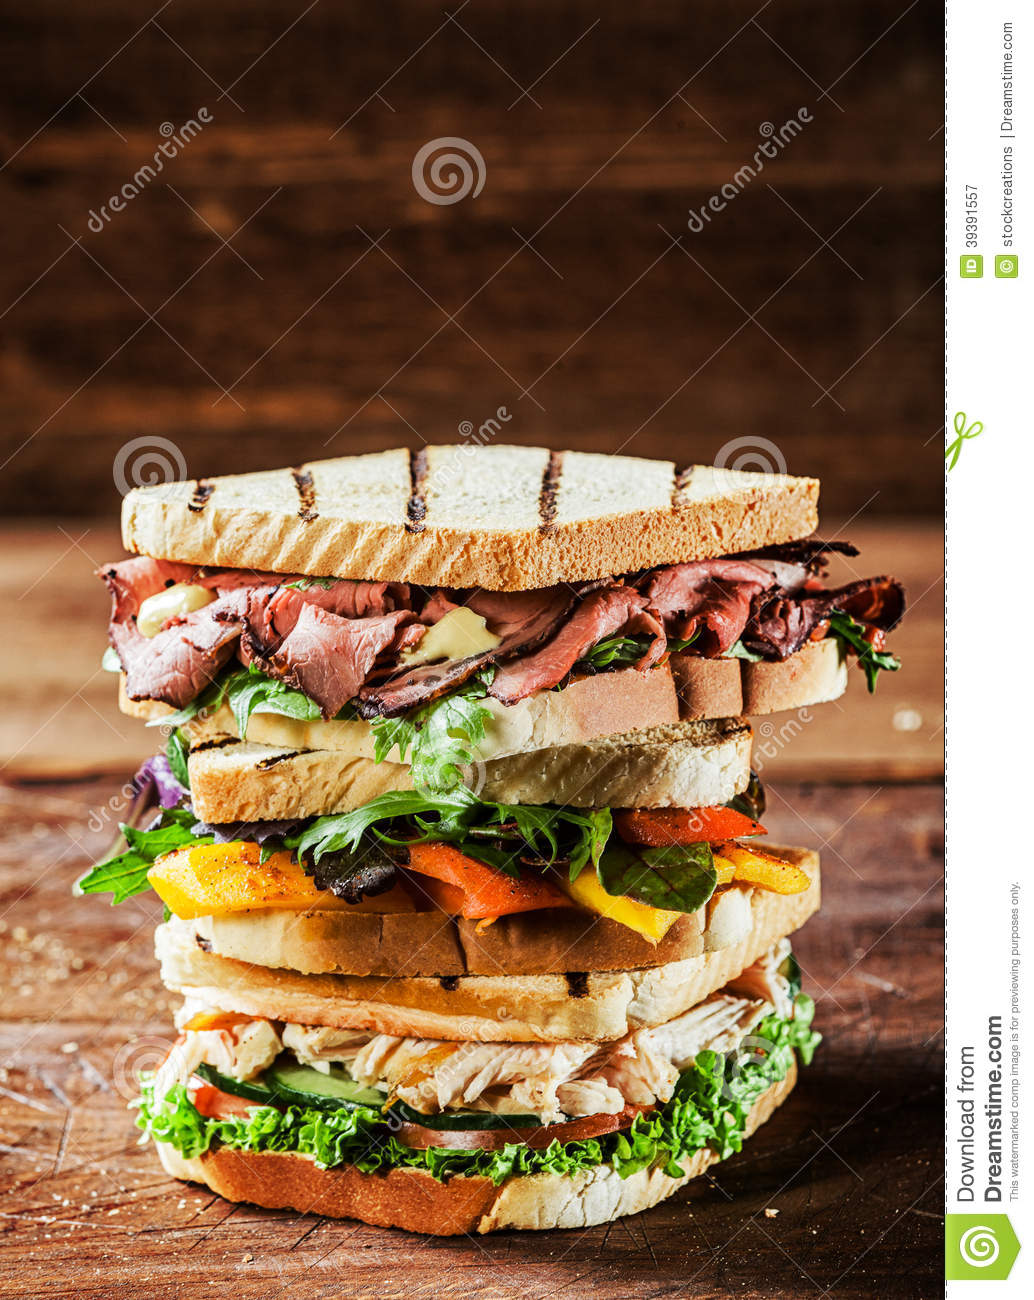 Choice of tasty toasted sandwiches